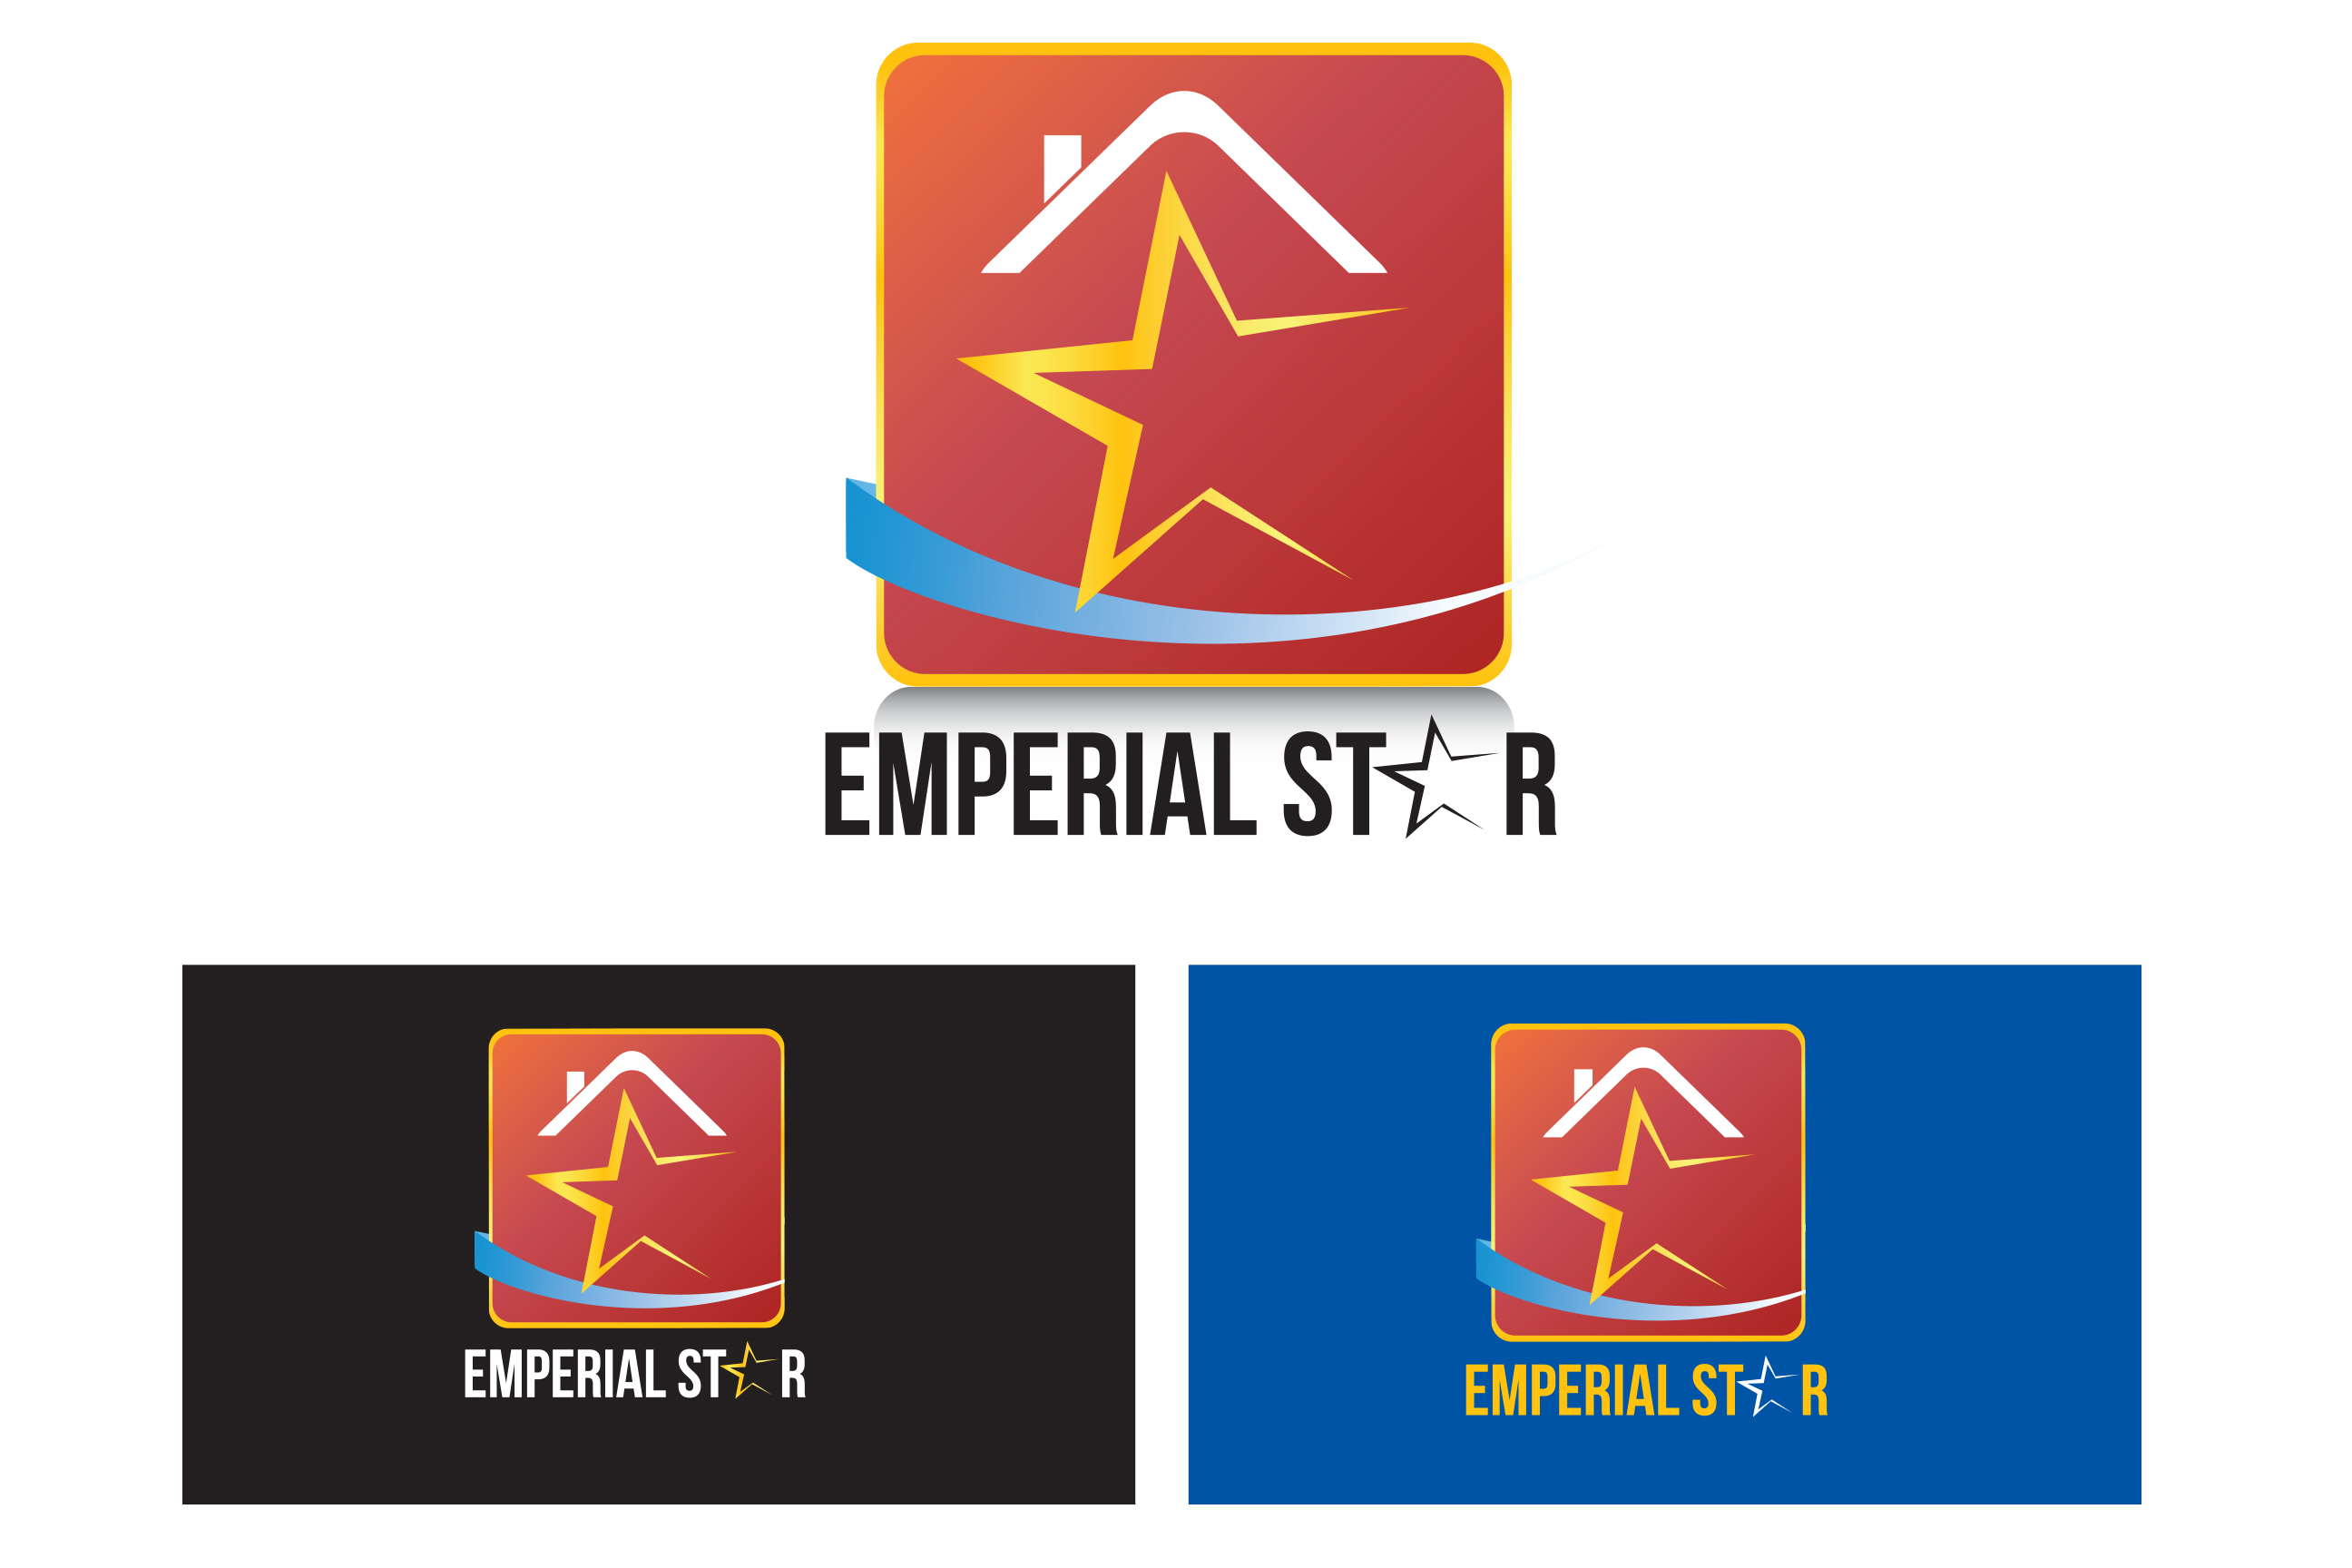 Logo Design by Leonard Anthony Alloso - Entry No. 149 in the Logo Design Contest Emperial Star Logo Design.